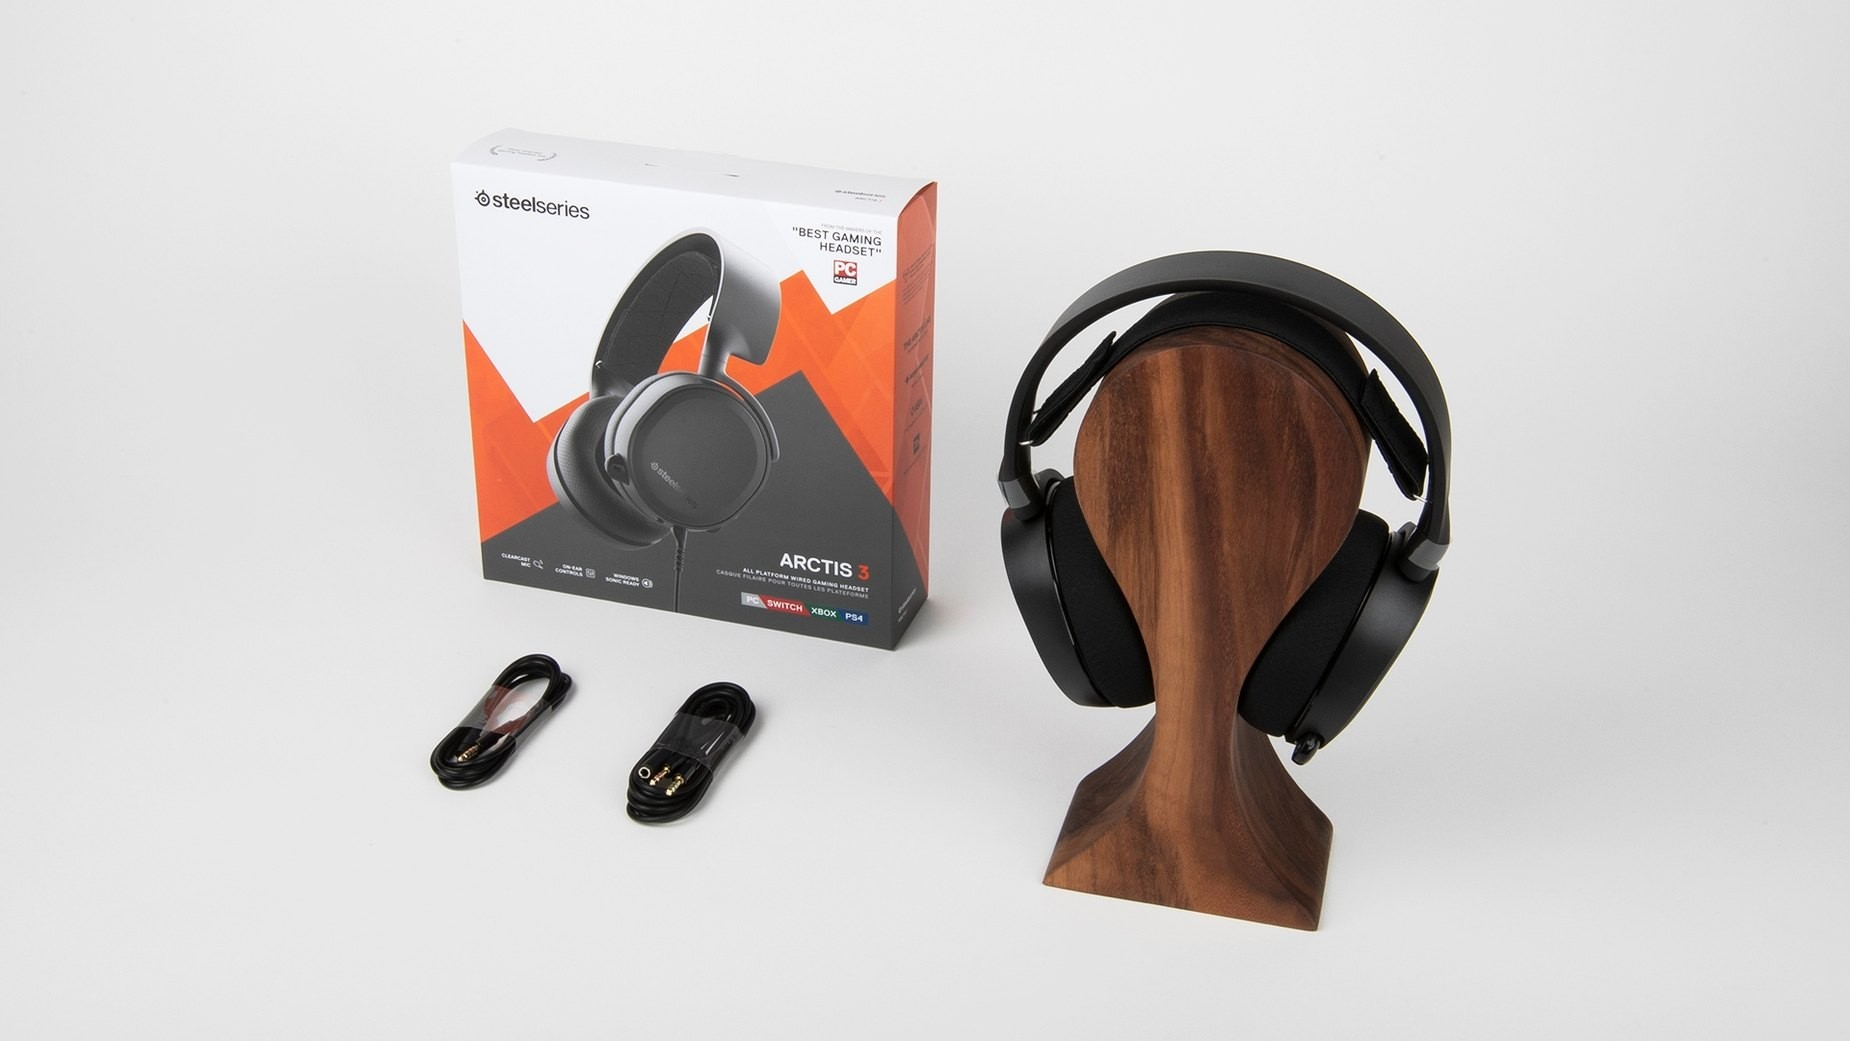 Steelseries Arctis 3 Black (2019 Edition) gaming headset